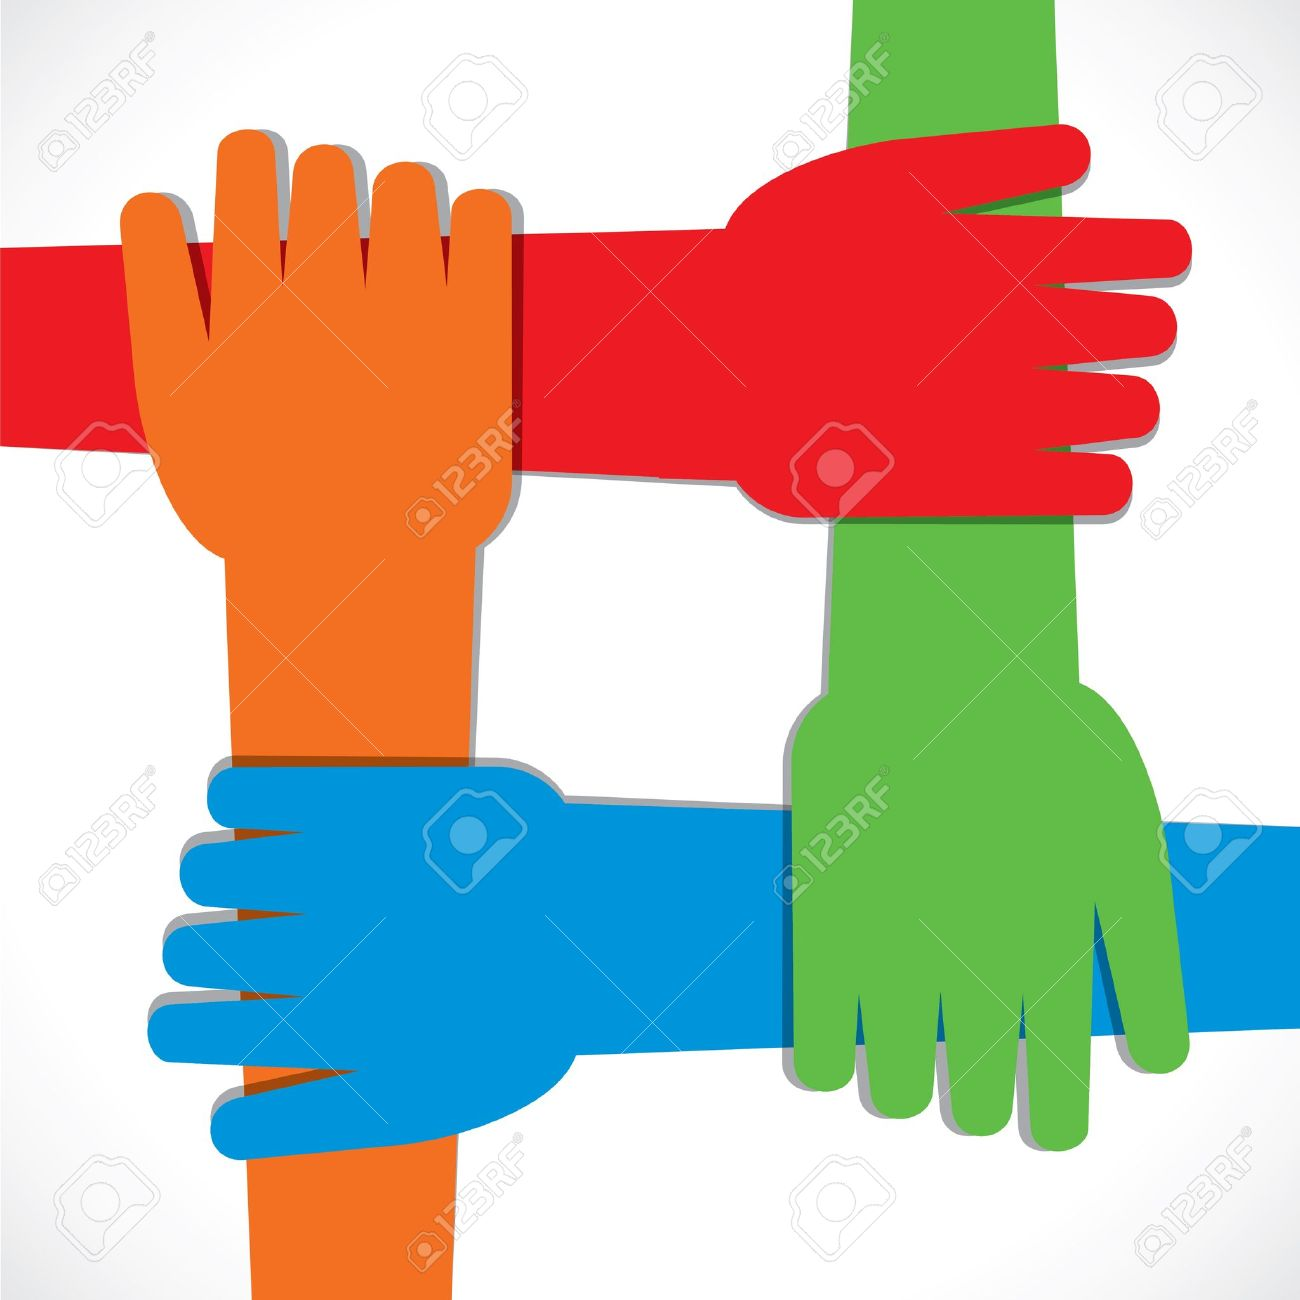 Hands together clipart 11 » Clipart Station.